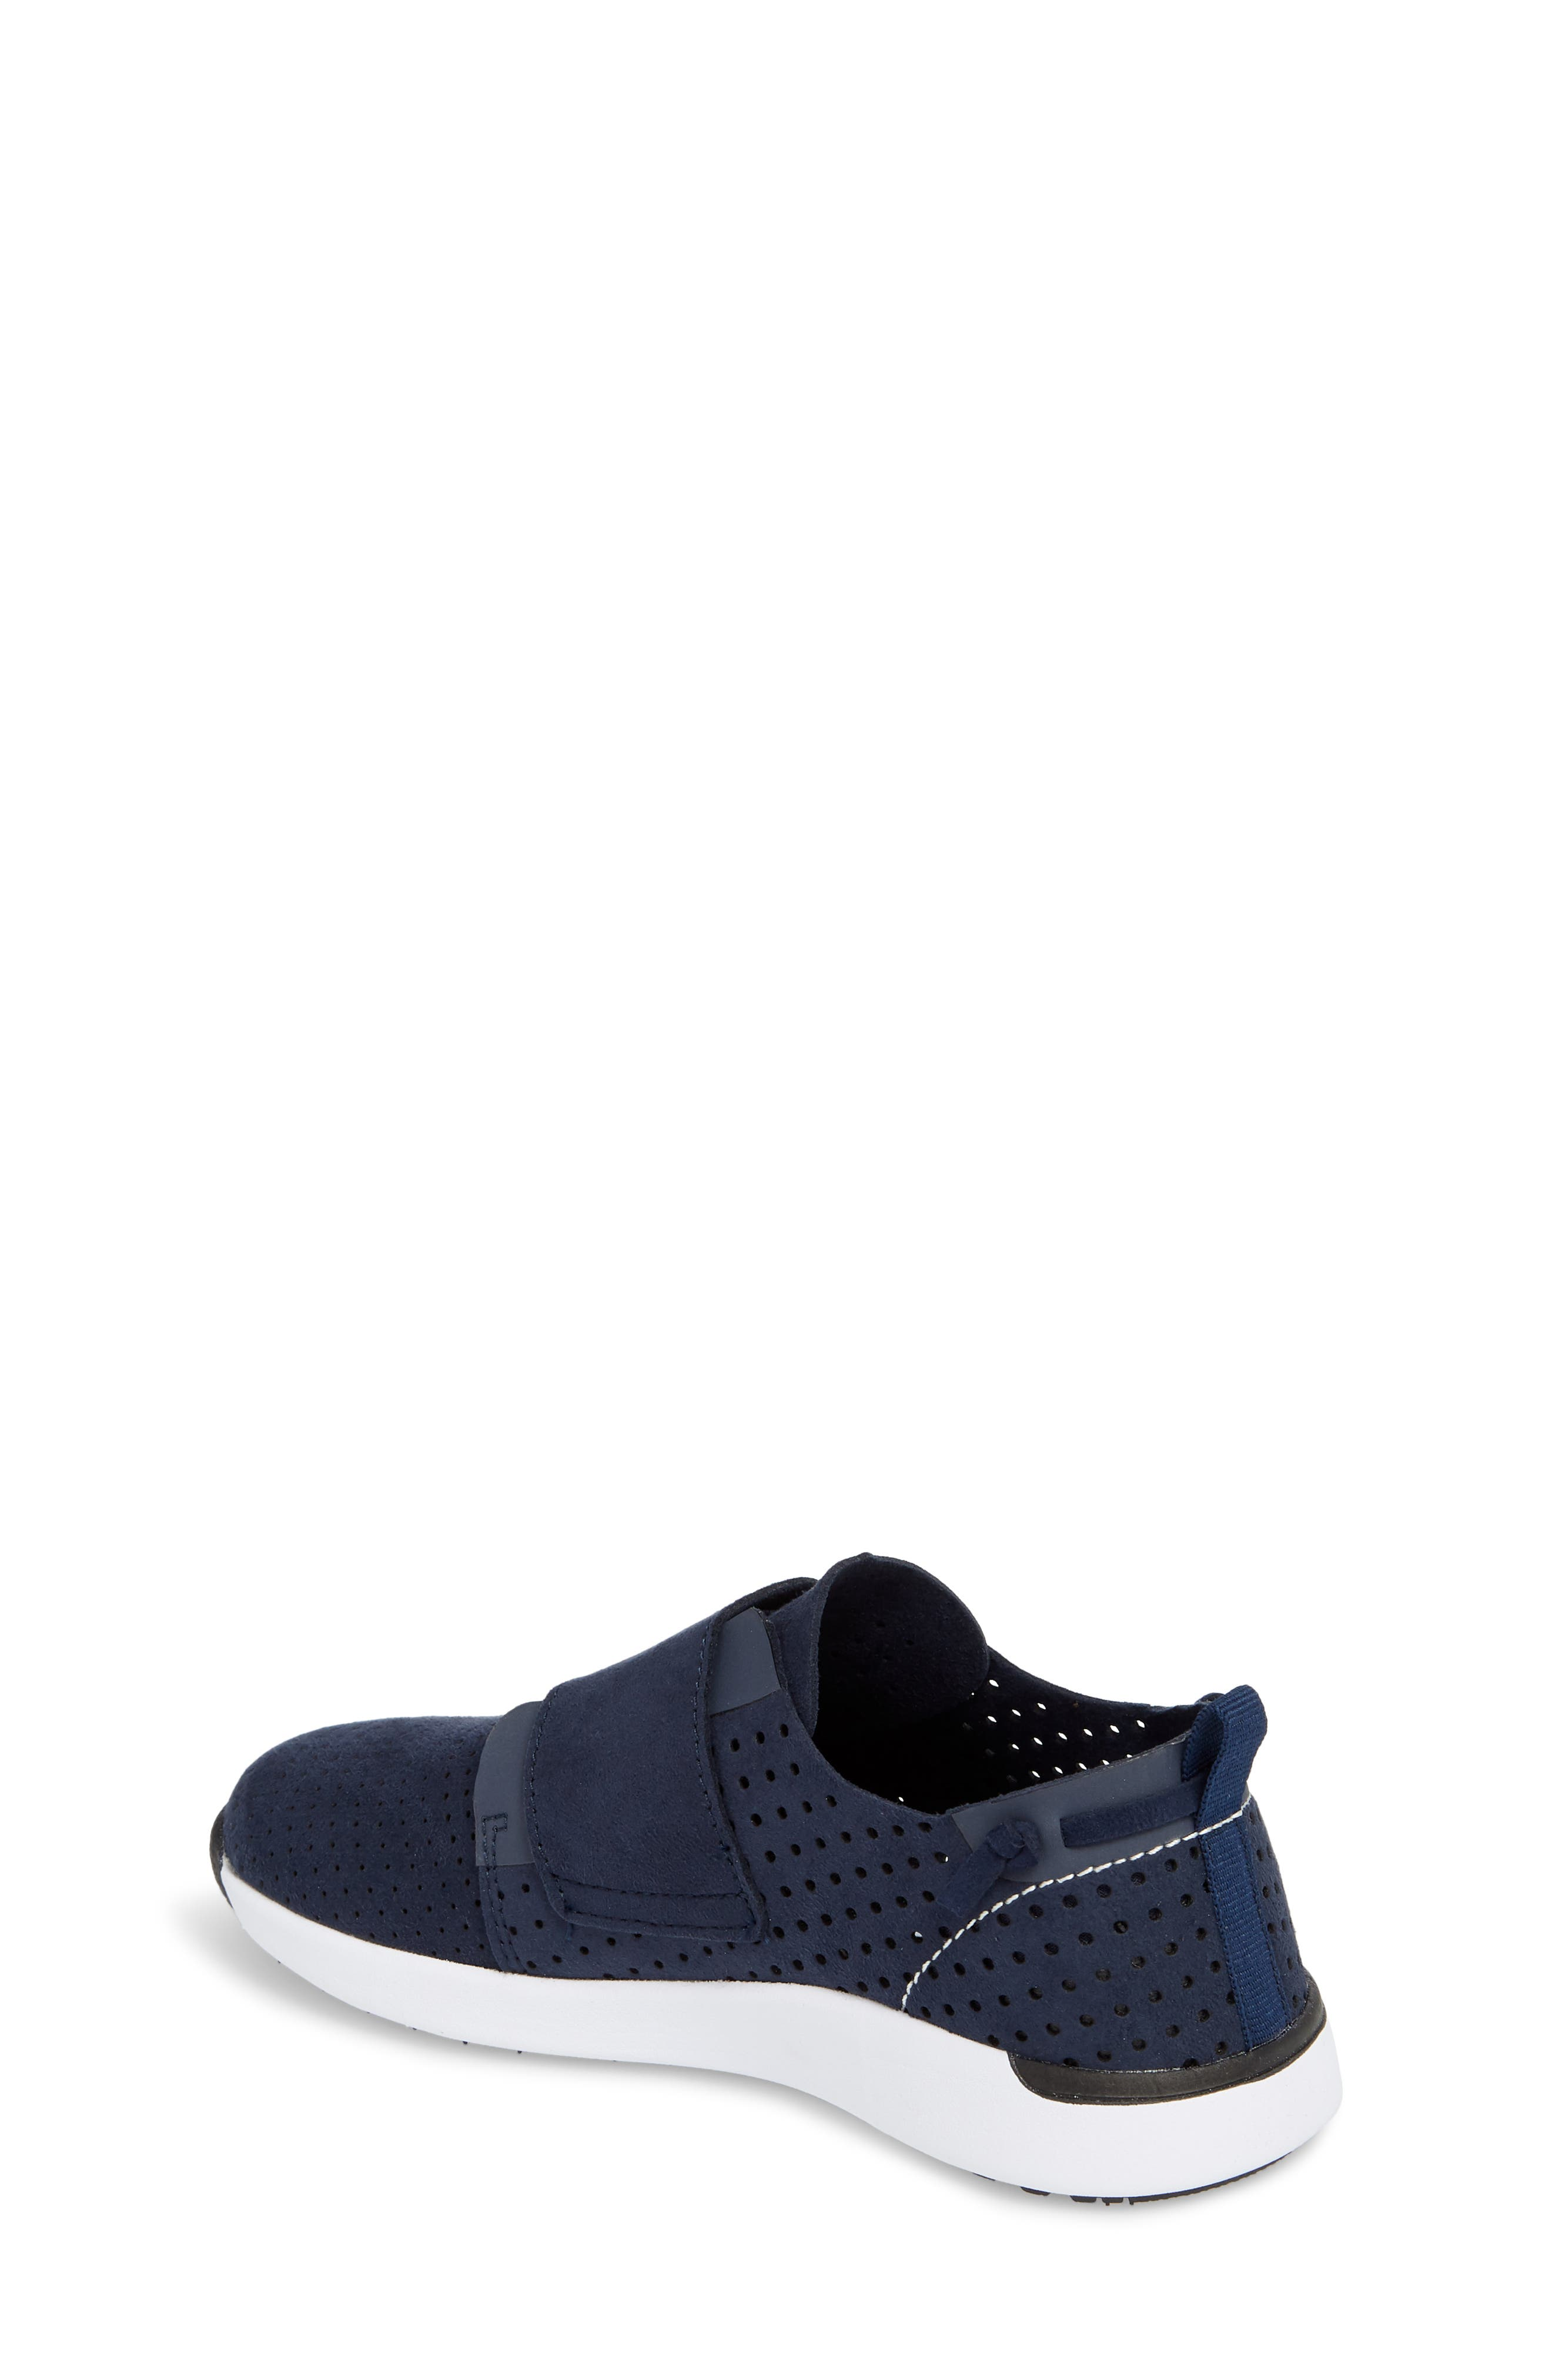 Brixxnv Perforated Sneaker,                             Alternate thumbnail 2, color,                             NAVY